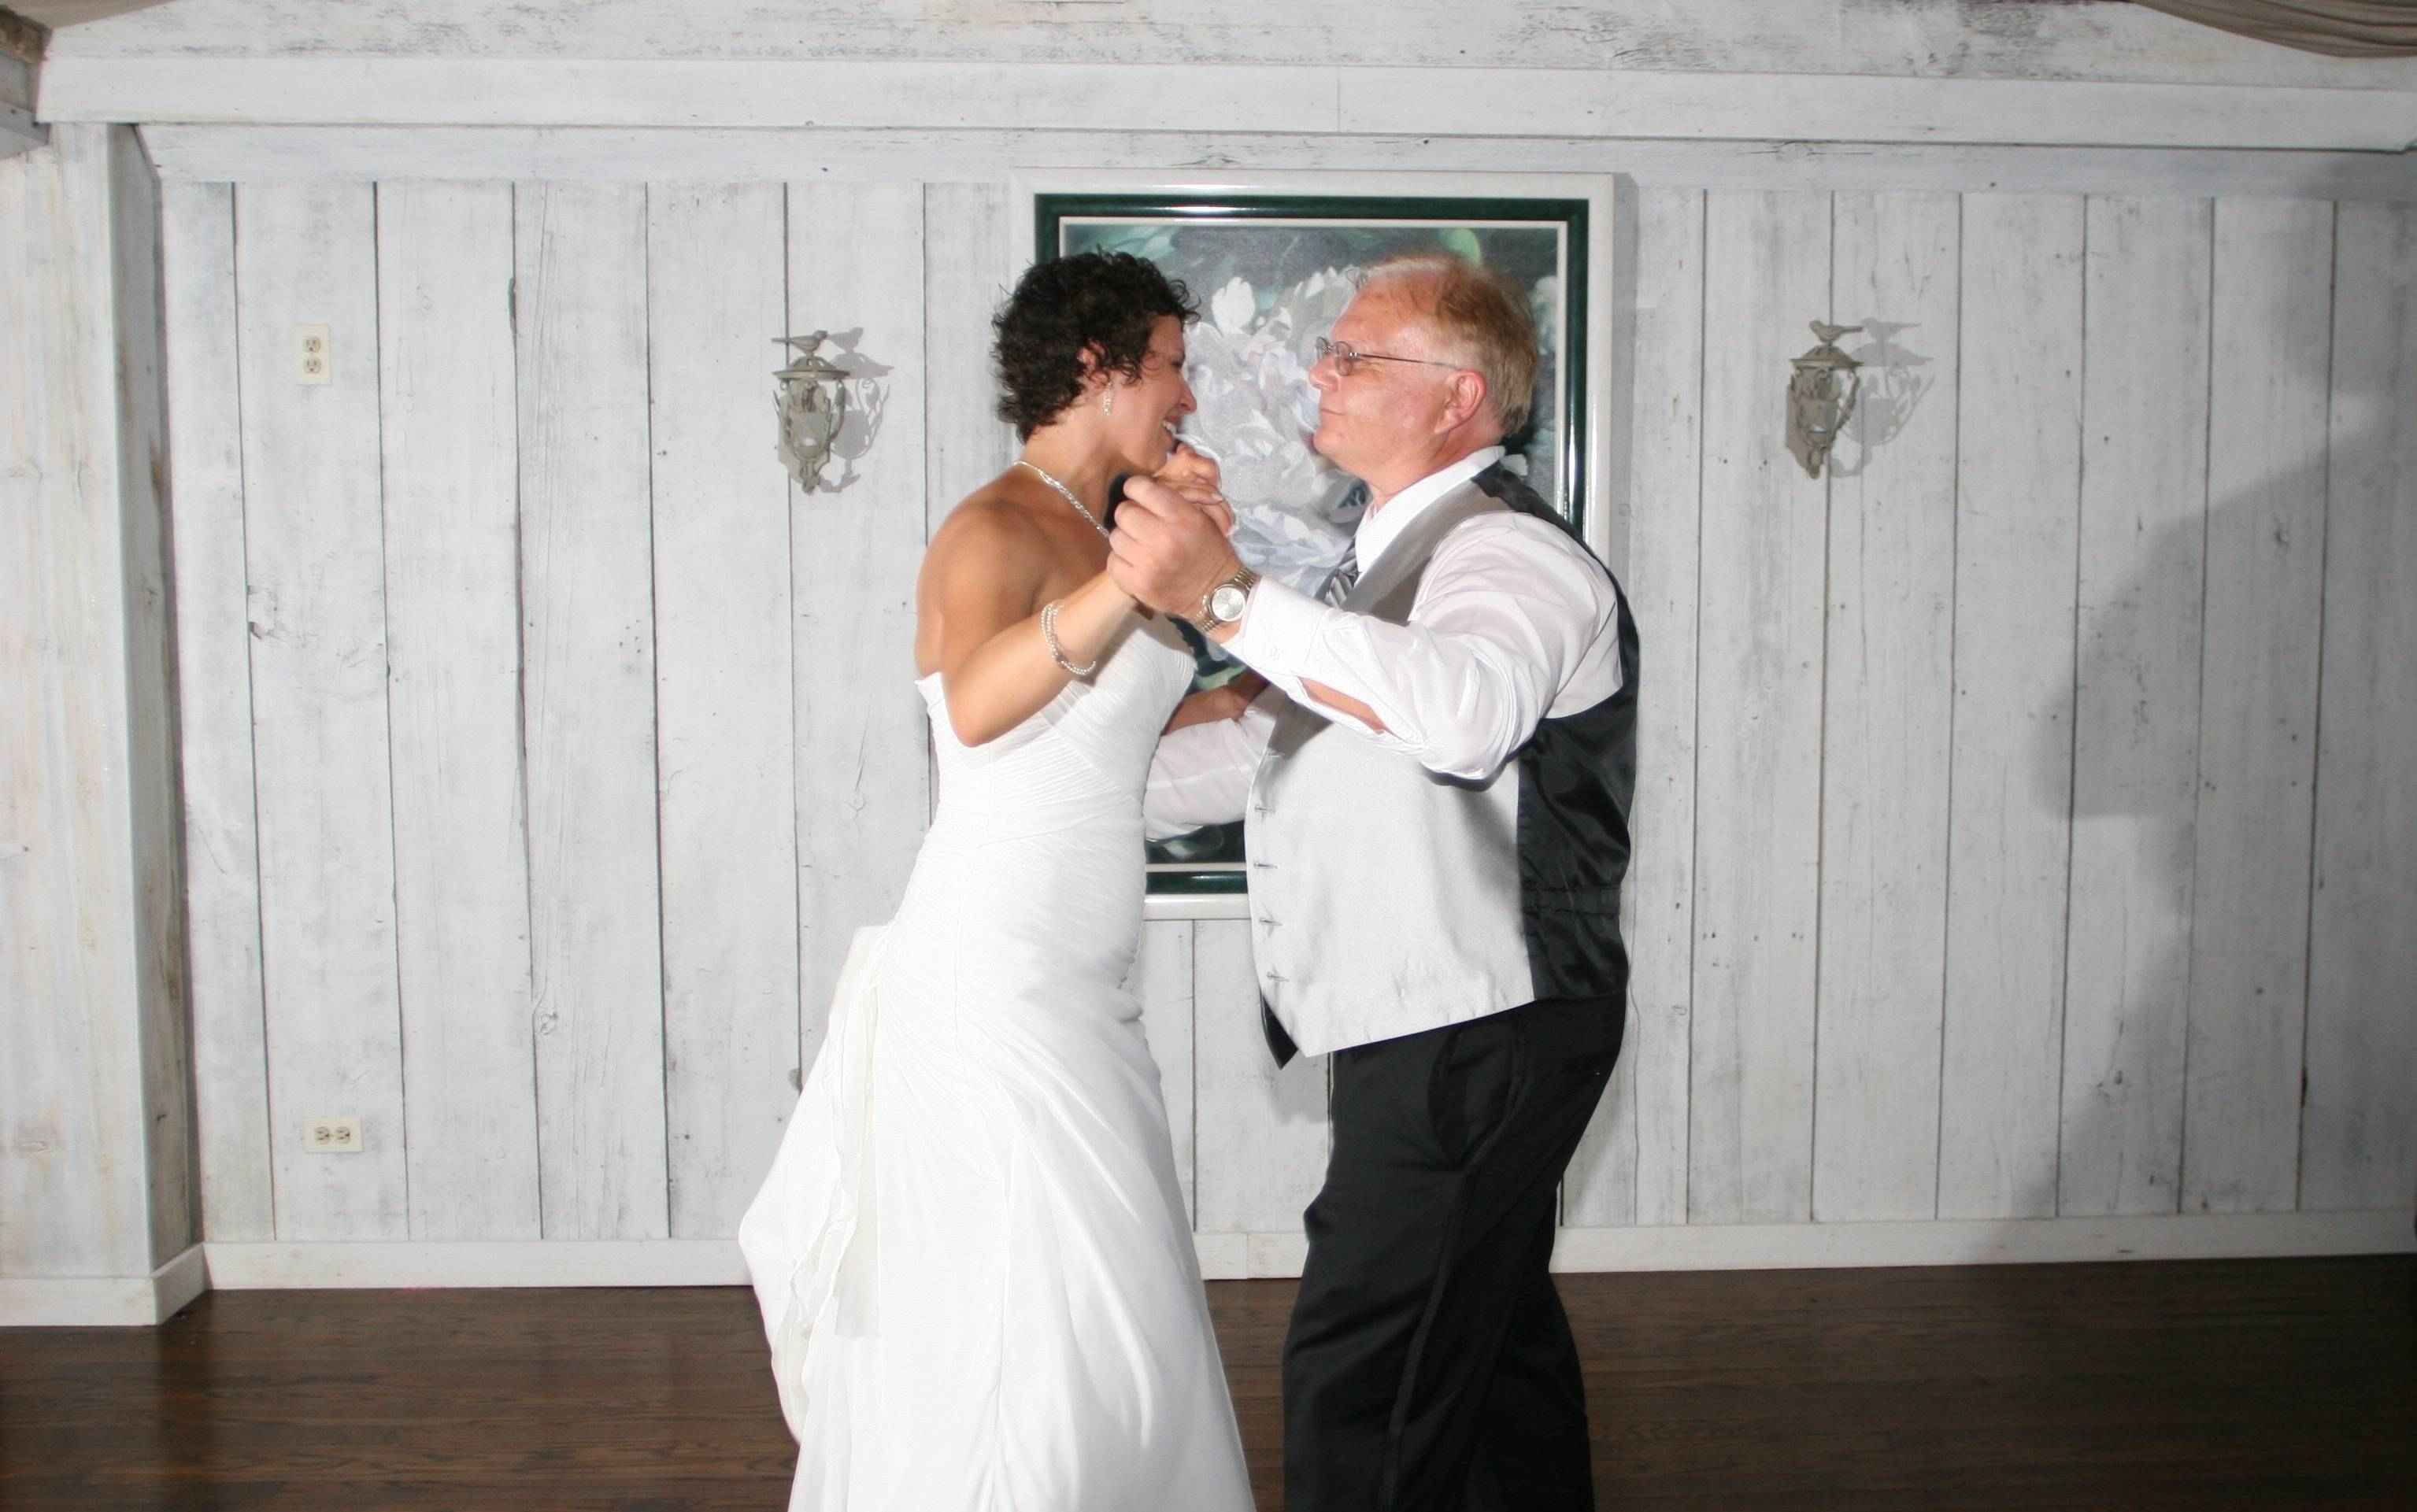 Joe Such of Elk Grove Village dances with new daughter-in-law Kristen at her wedding to Joe's son Danny in 2011.